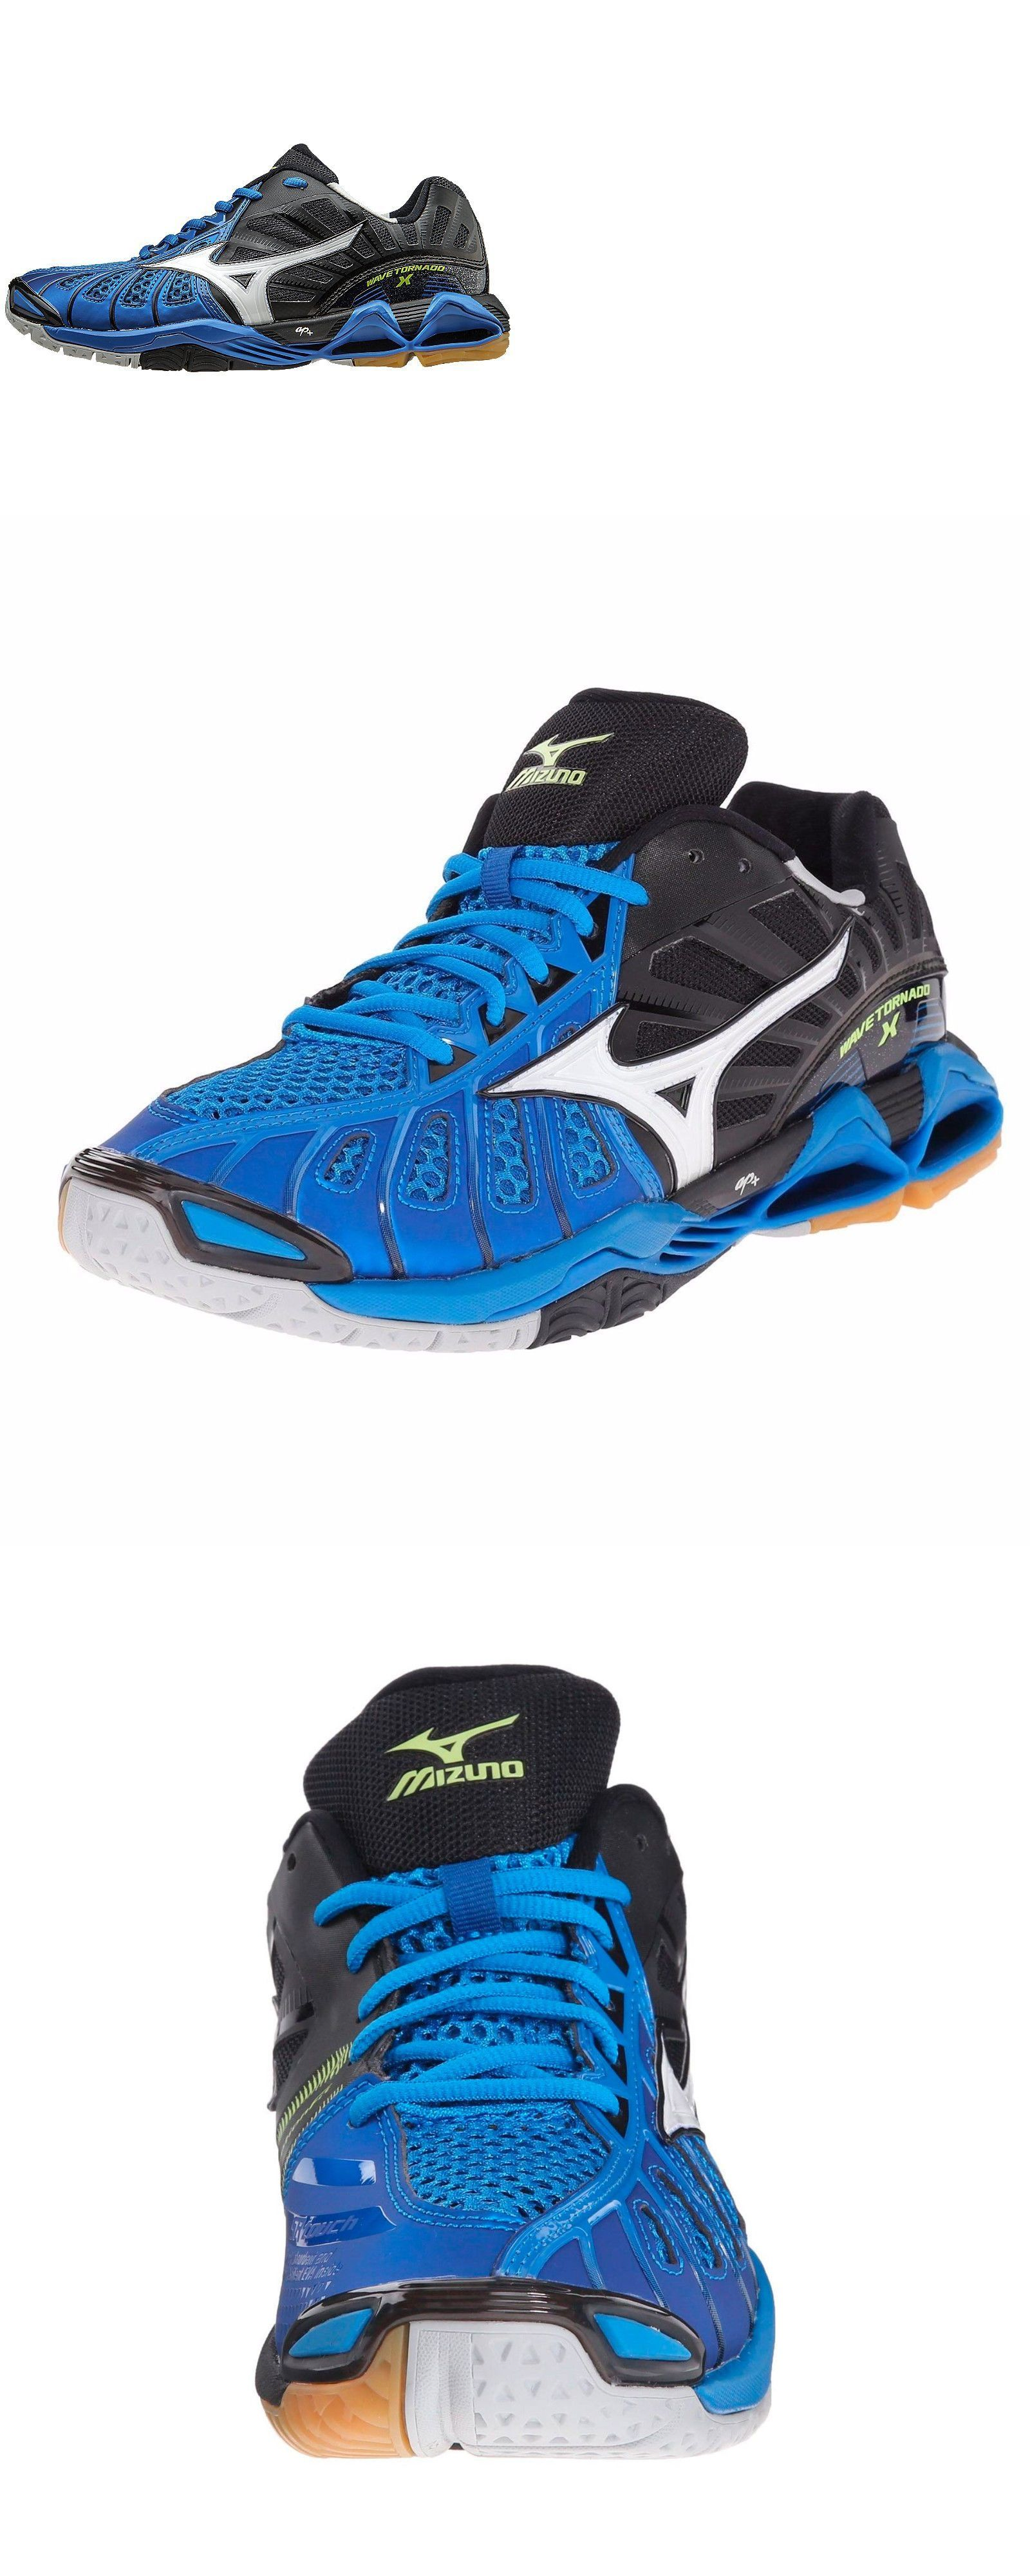 designer fashion fa01d 52f71 Clothing 159130  Mizuno Wave Tornado X Men S Volleyball Shoes Blue-Black -   BUY IT NOW ONLY   122 on eBay!